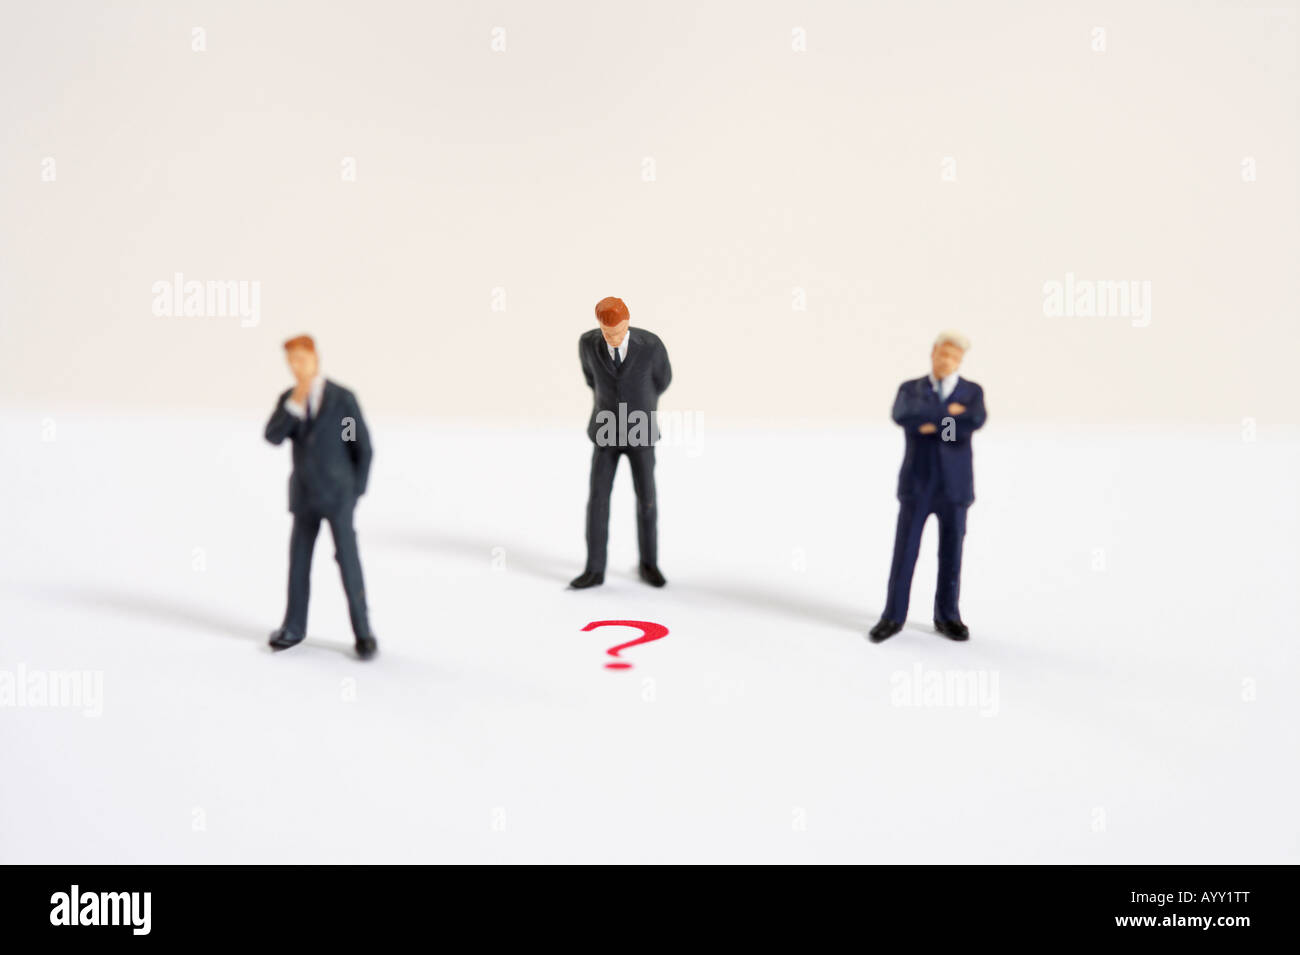 Three businessmen figurines and question mark Stock Photo